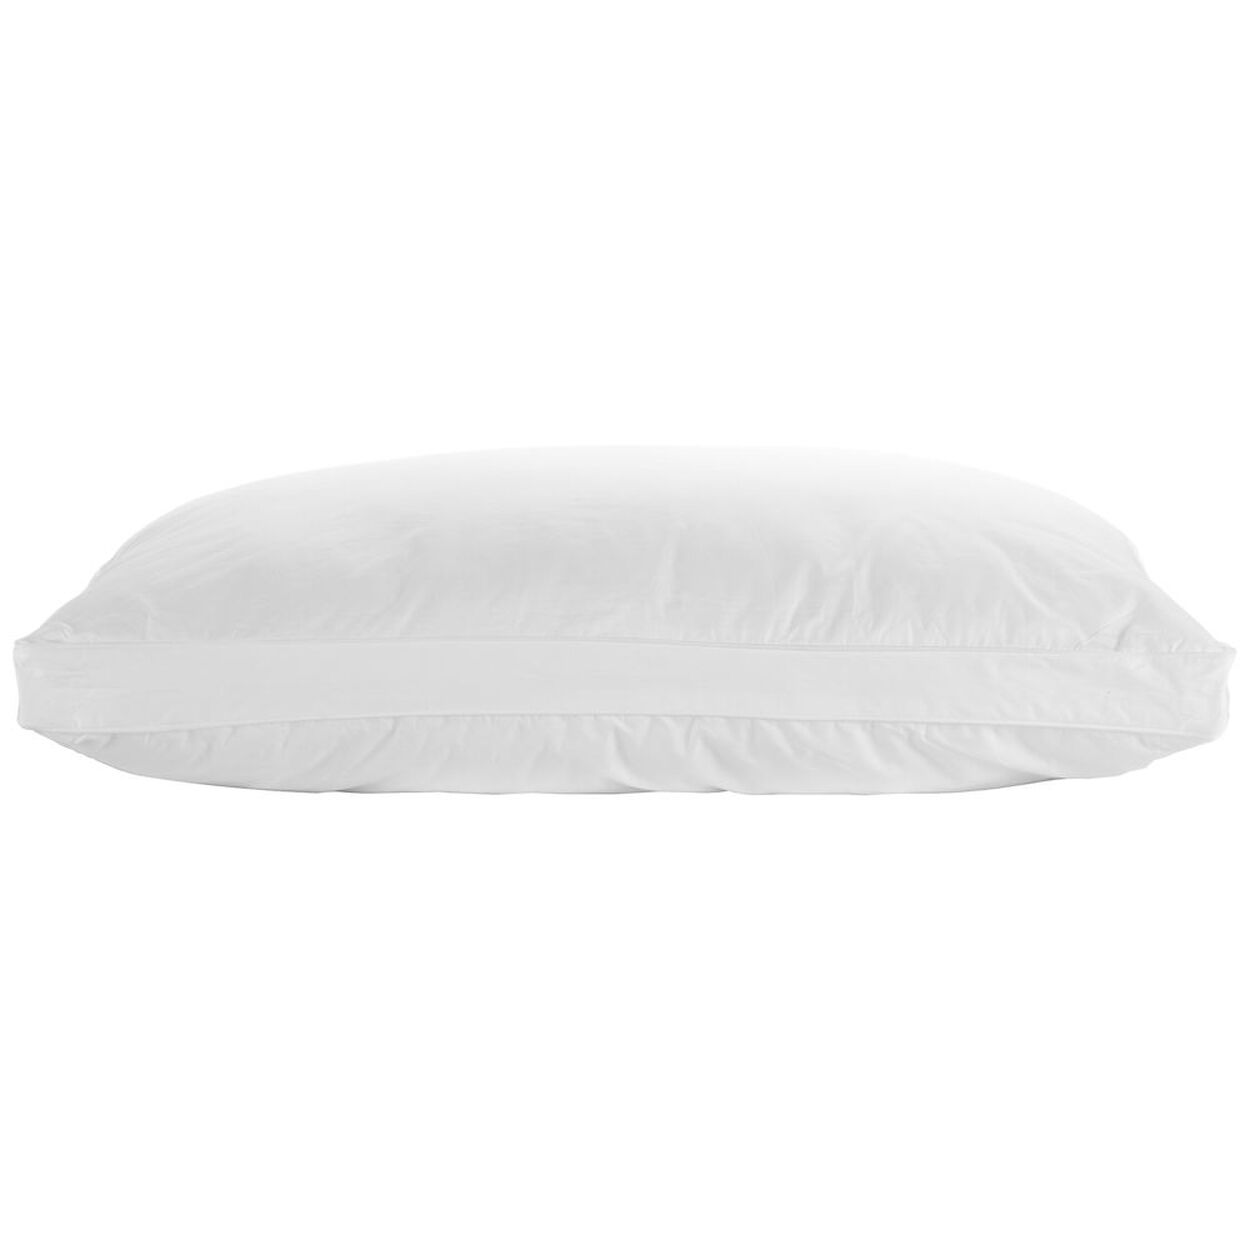 Microgel Fibre Pillow